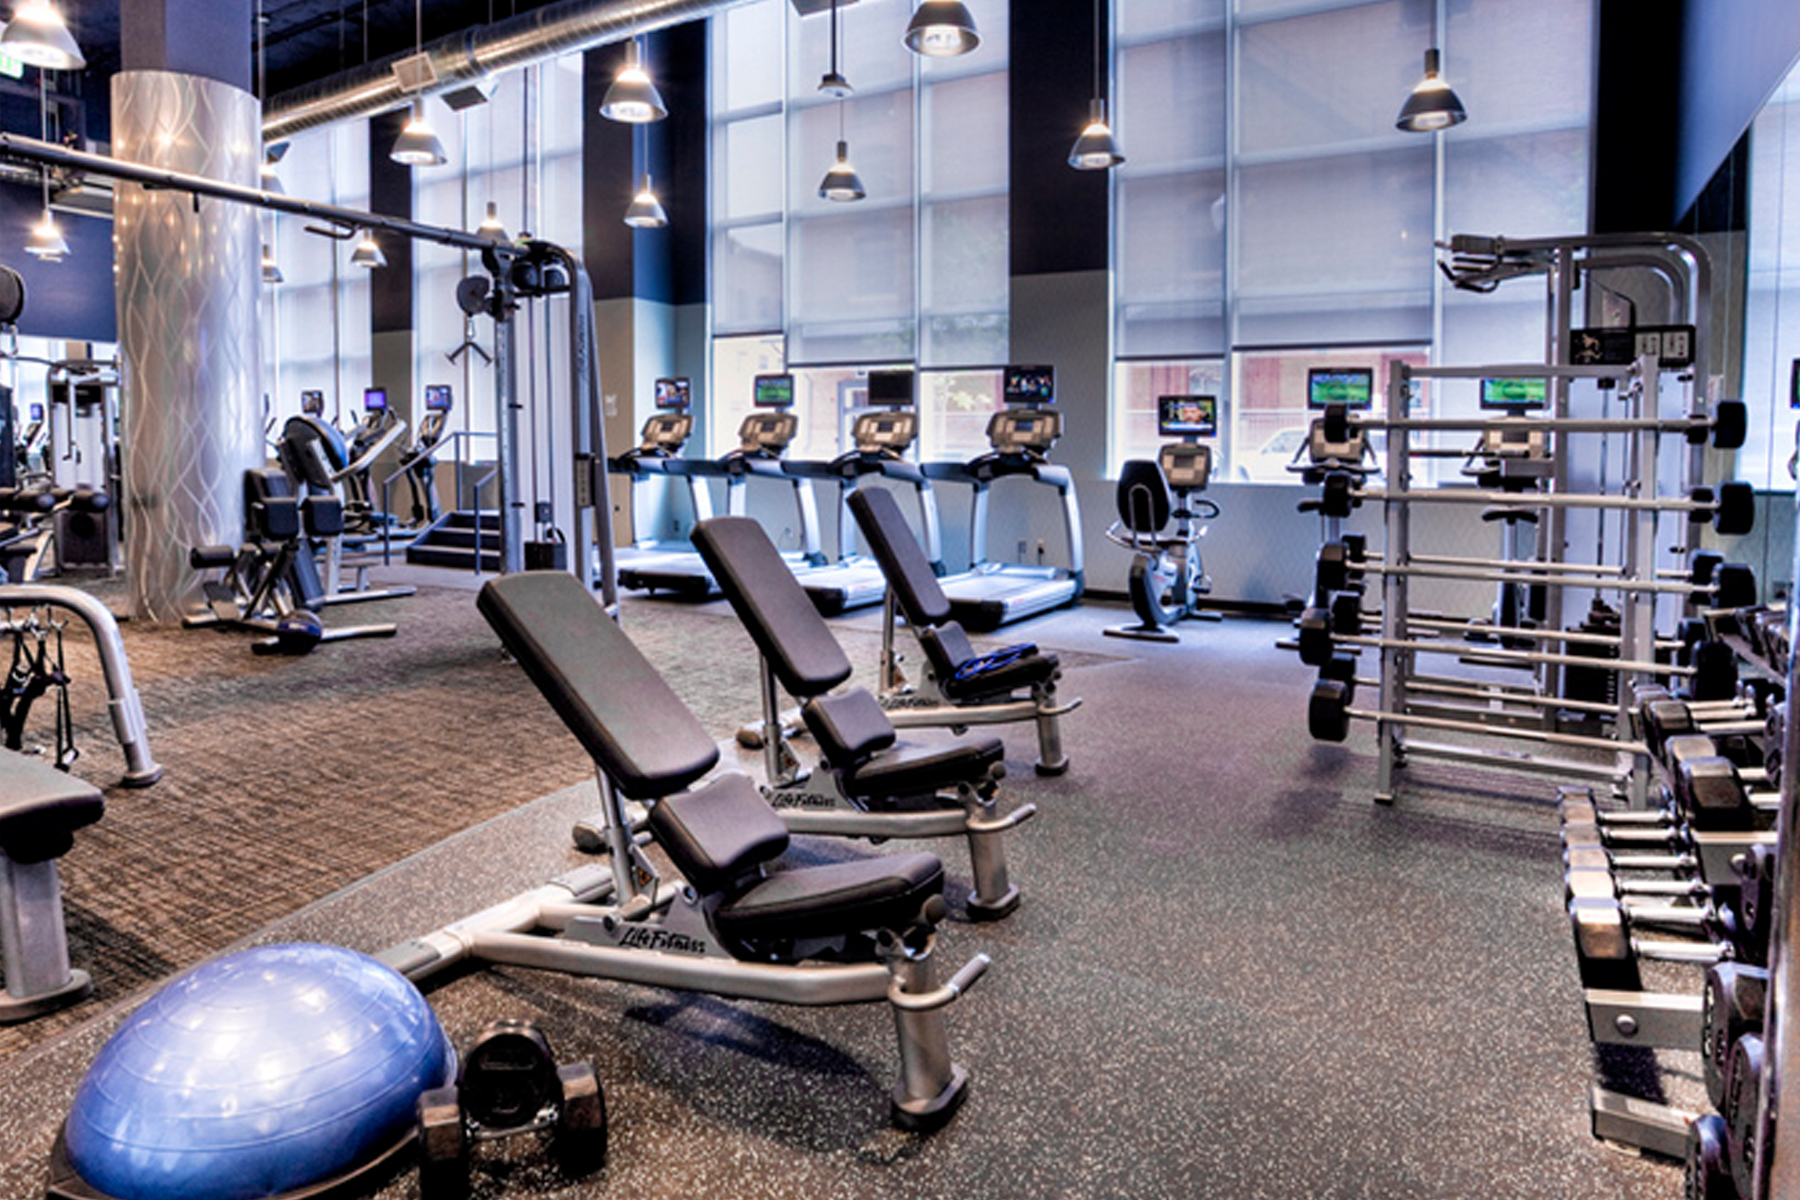 Fitness Center Construction, Denver Colorado- Jordy Construction 1